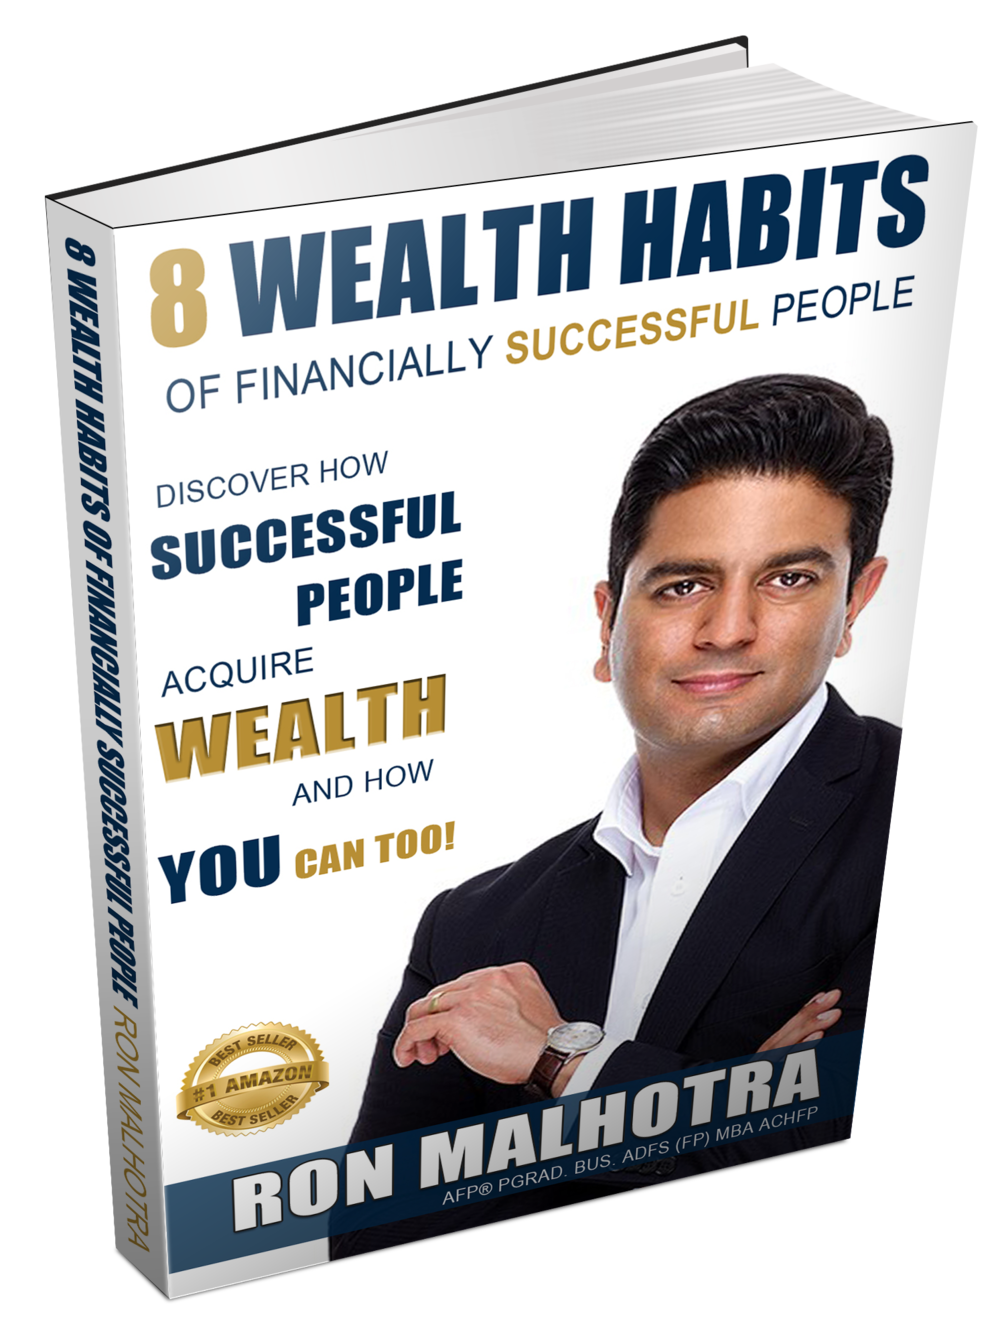 8 wealth habits of highly successful people